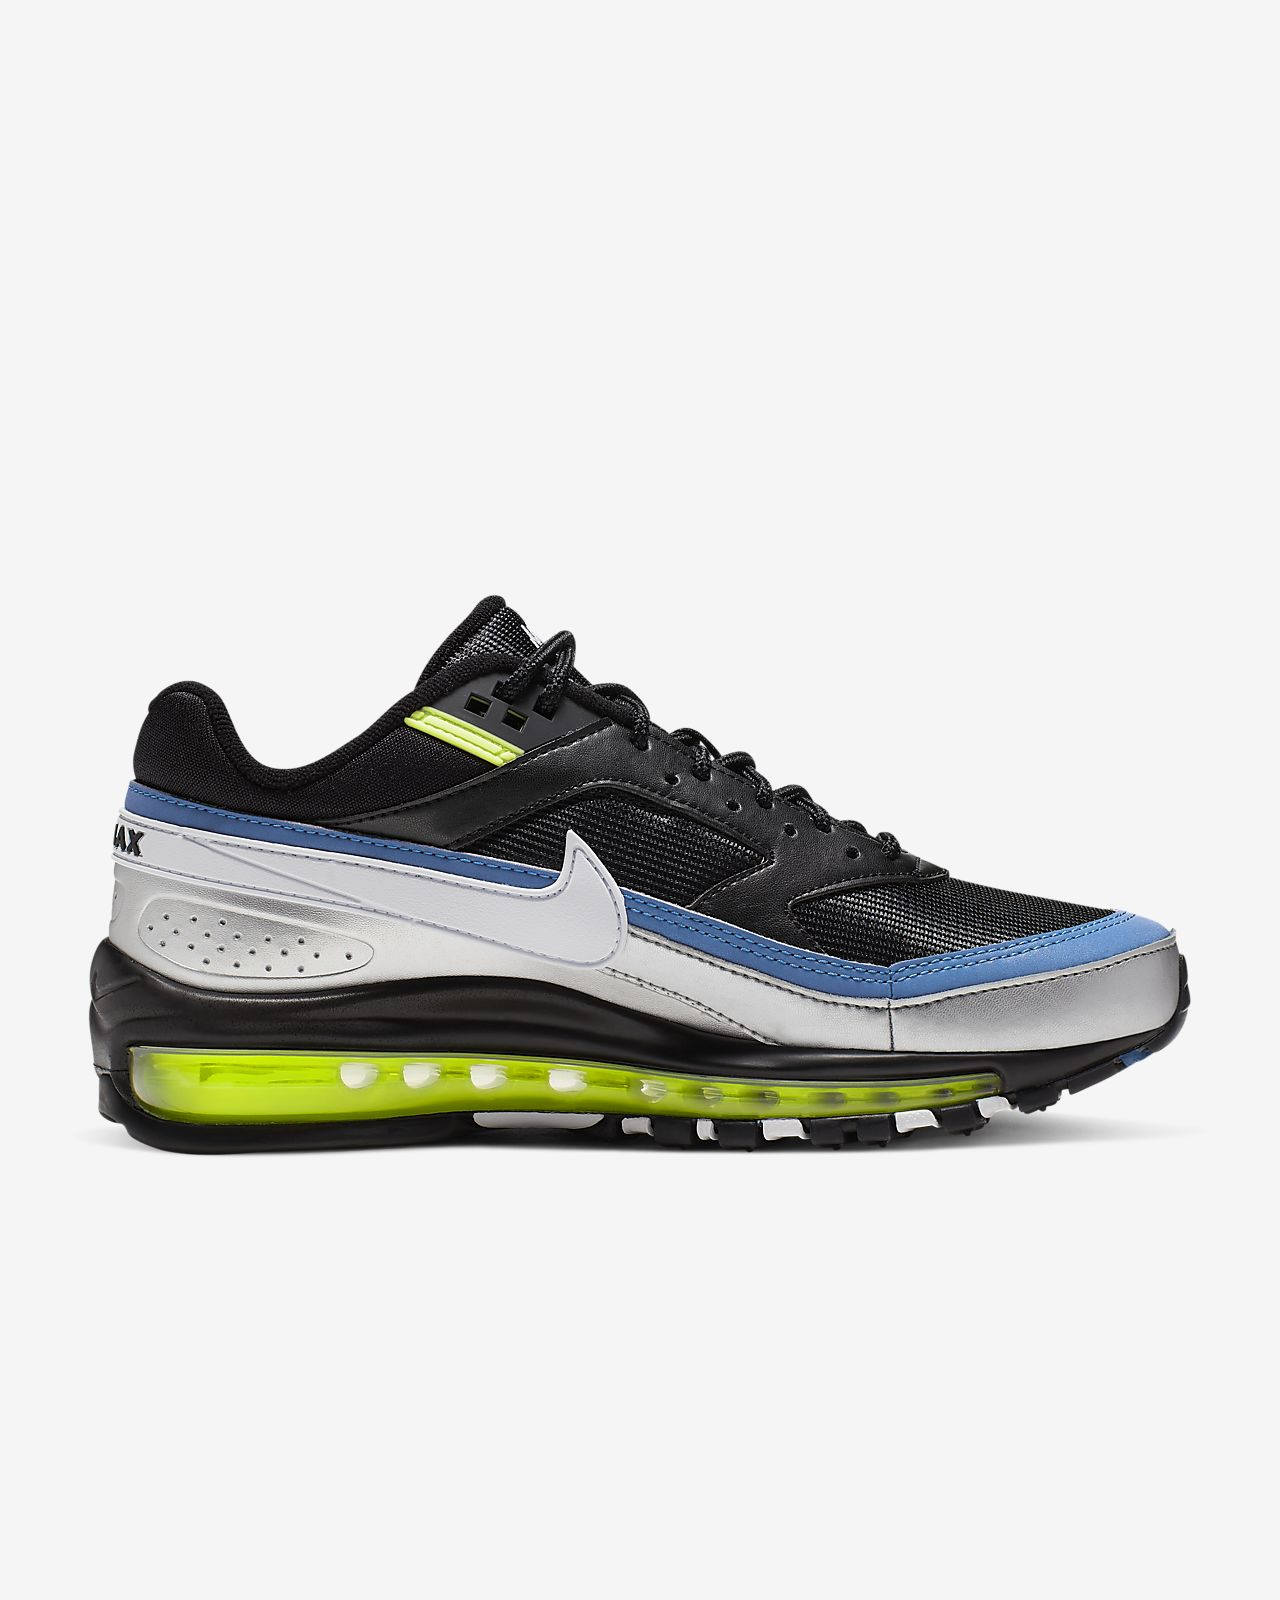 Nike Air Max 97BW Men's Shoe